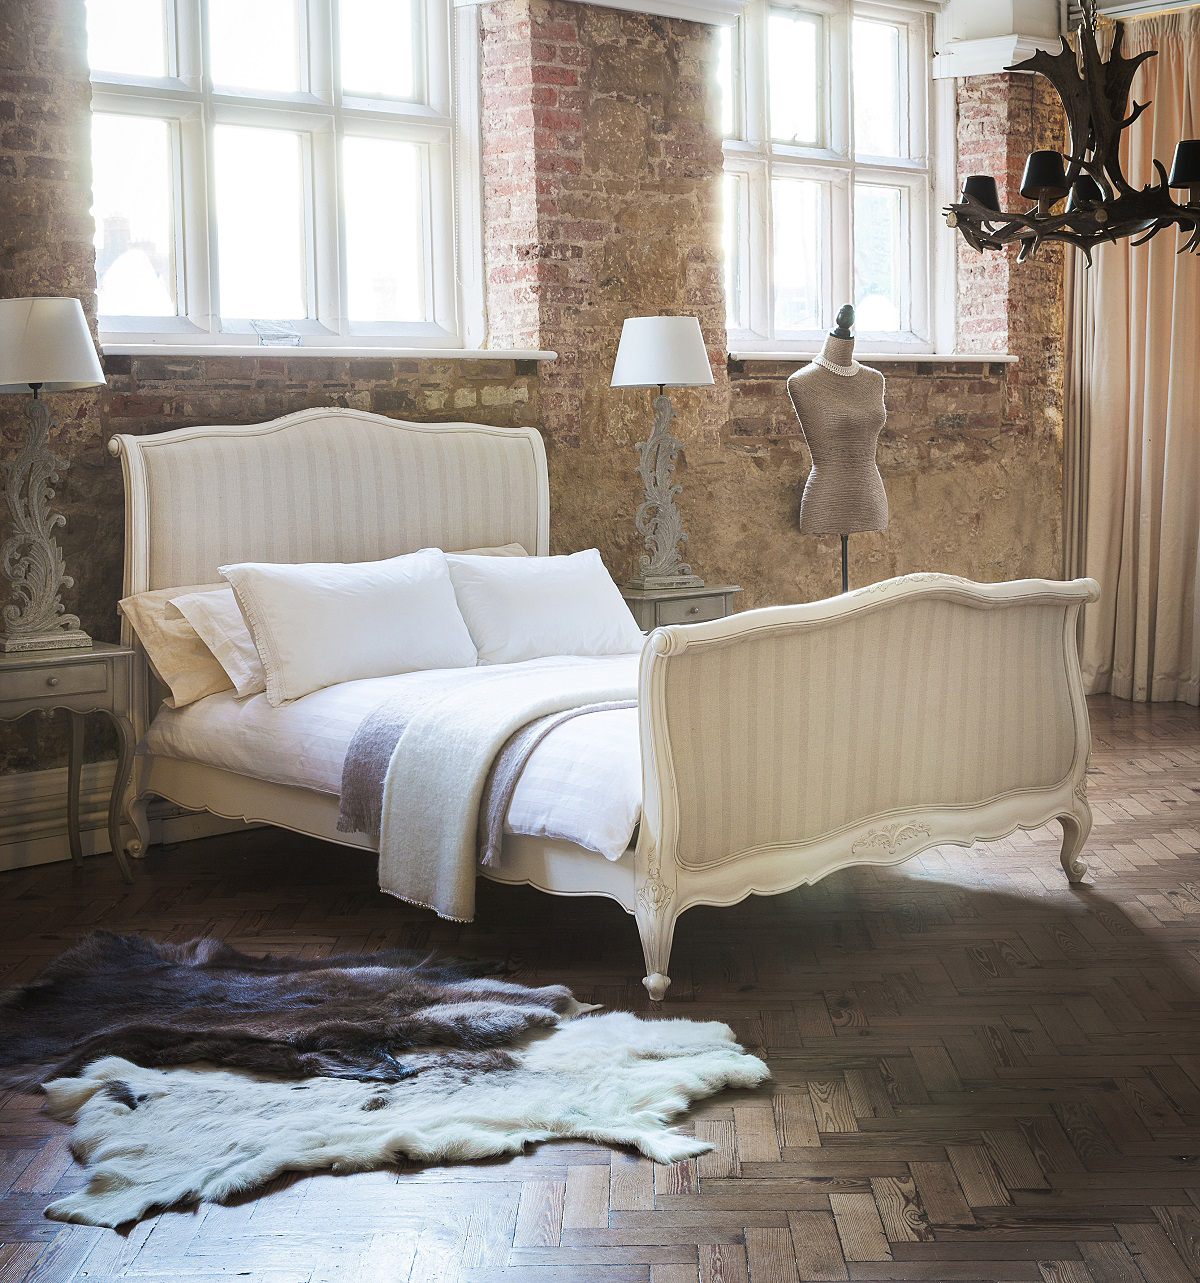 interiors trends bedrooms sweet dreams are made of this angelinascasa. Black Bedroom Furniture Sets. Home Design Ideas